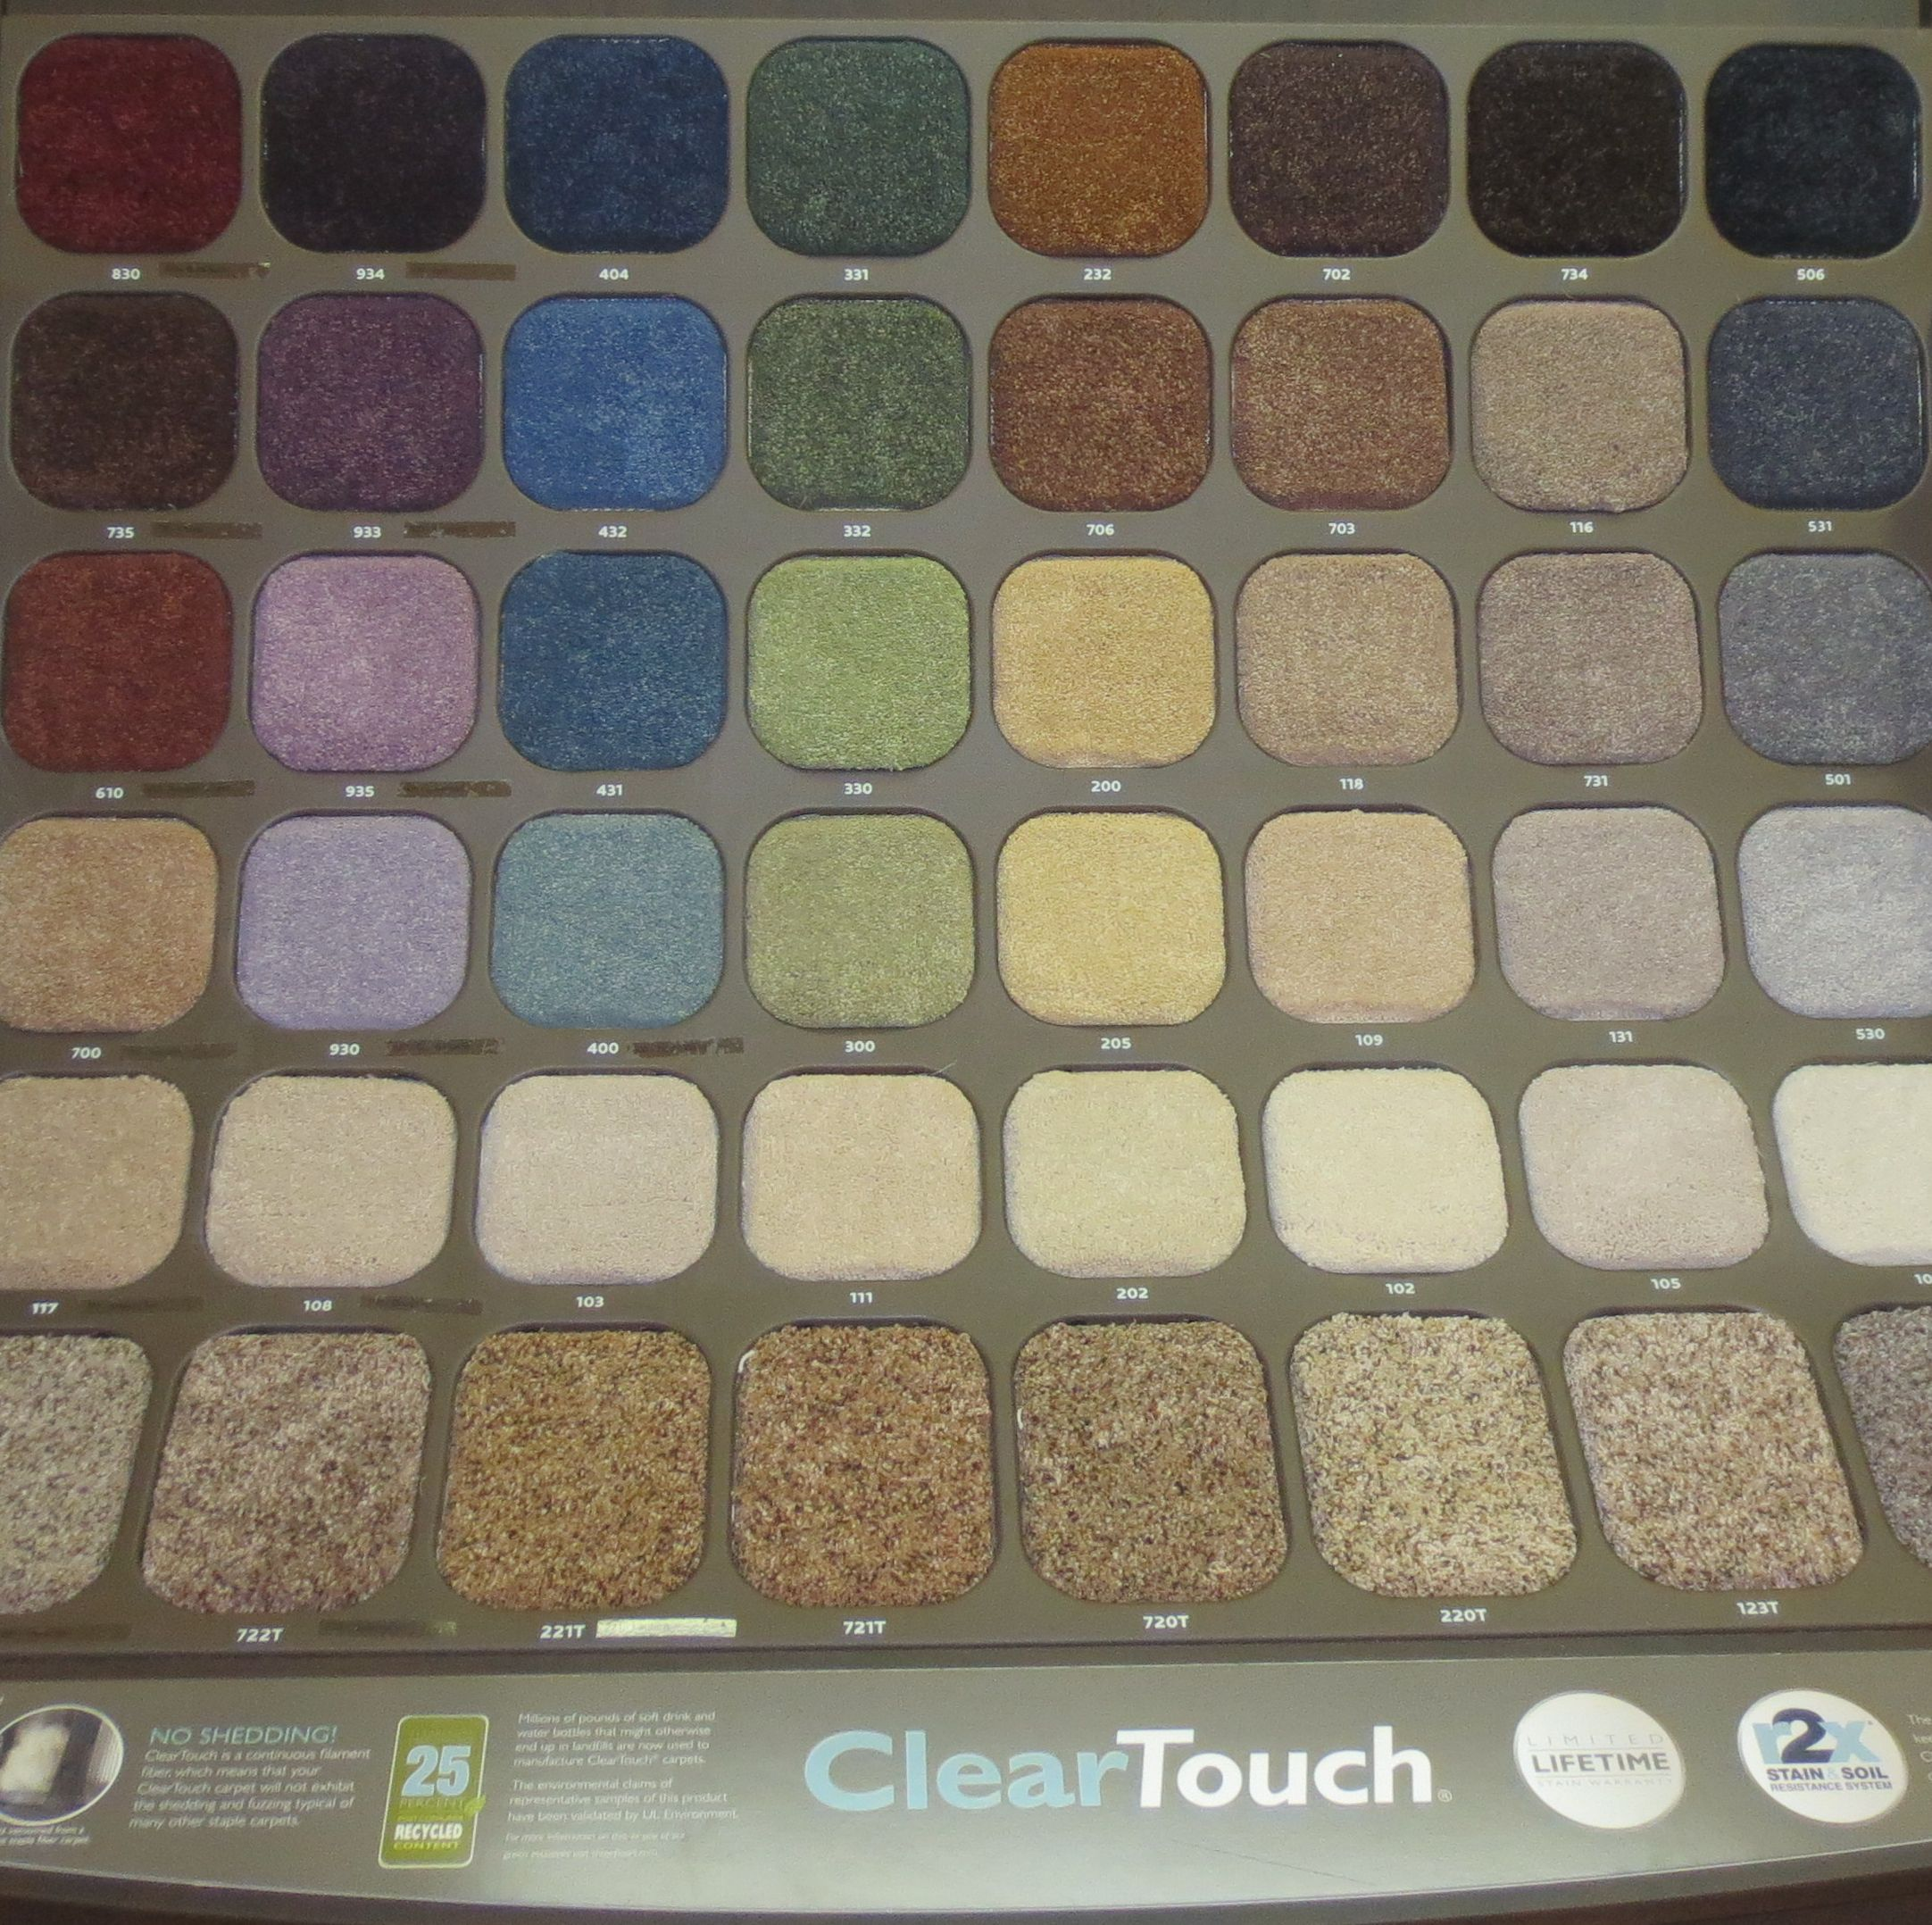 Shaw ClearTouch Review